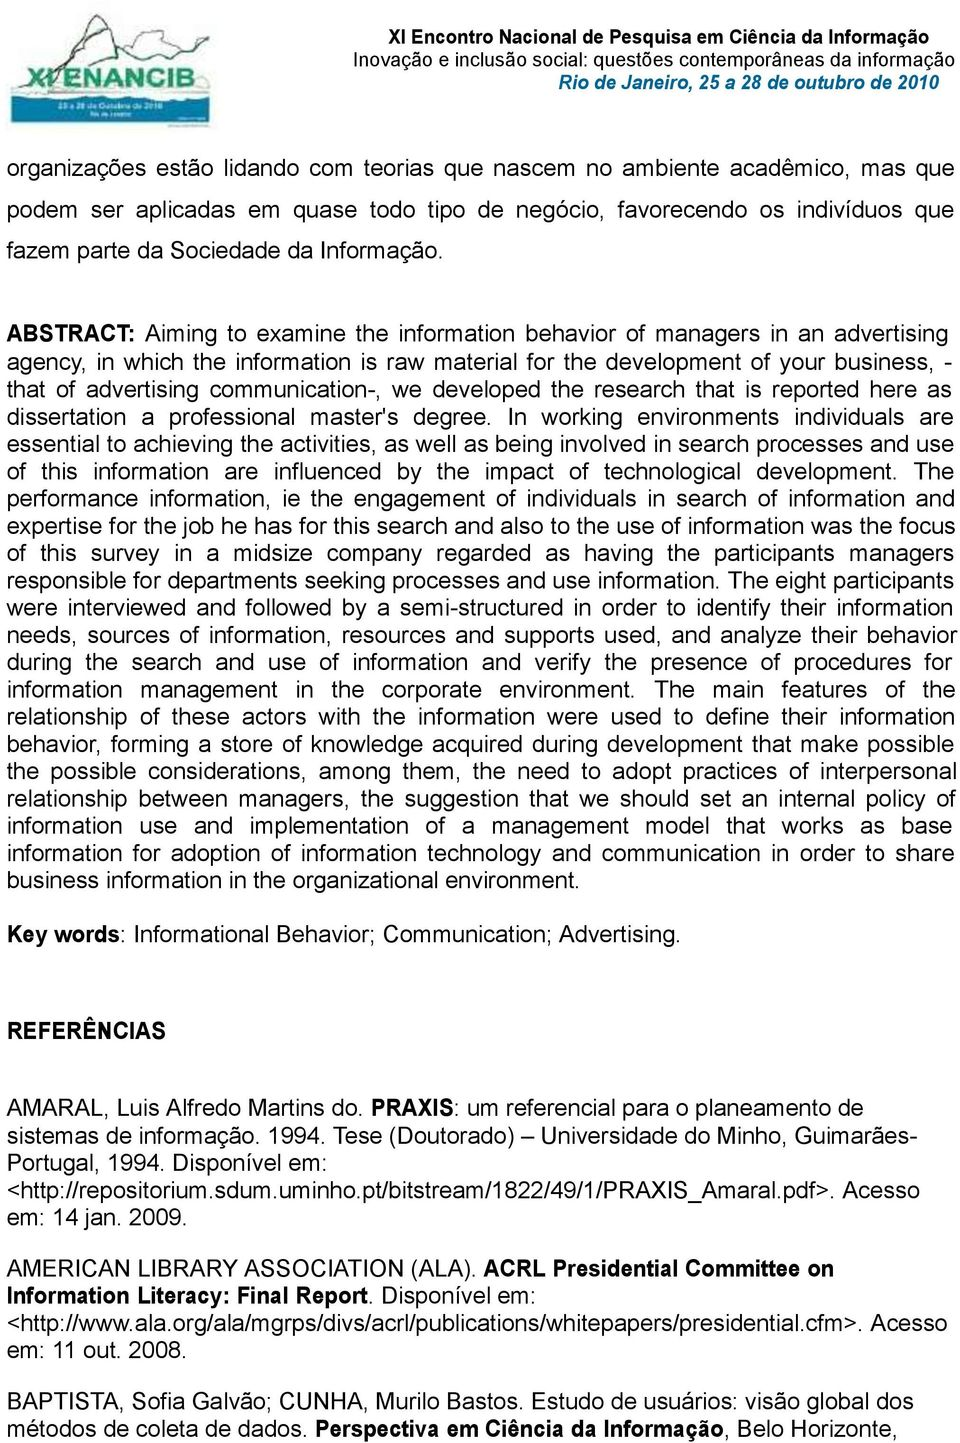 ABSTRACT: Aiming to examine the information behavior of managers in an advertising agency, in which the information is raw material for the development of your business, - that of advertising